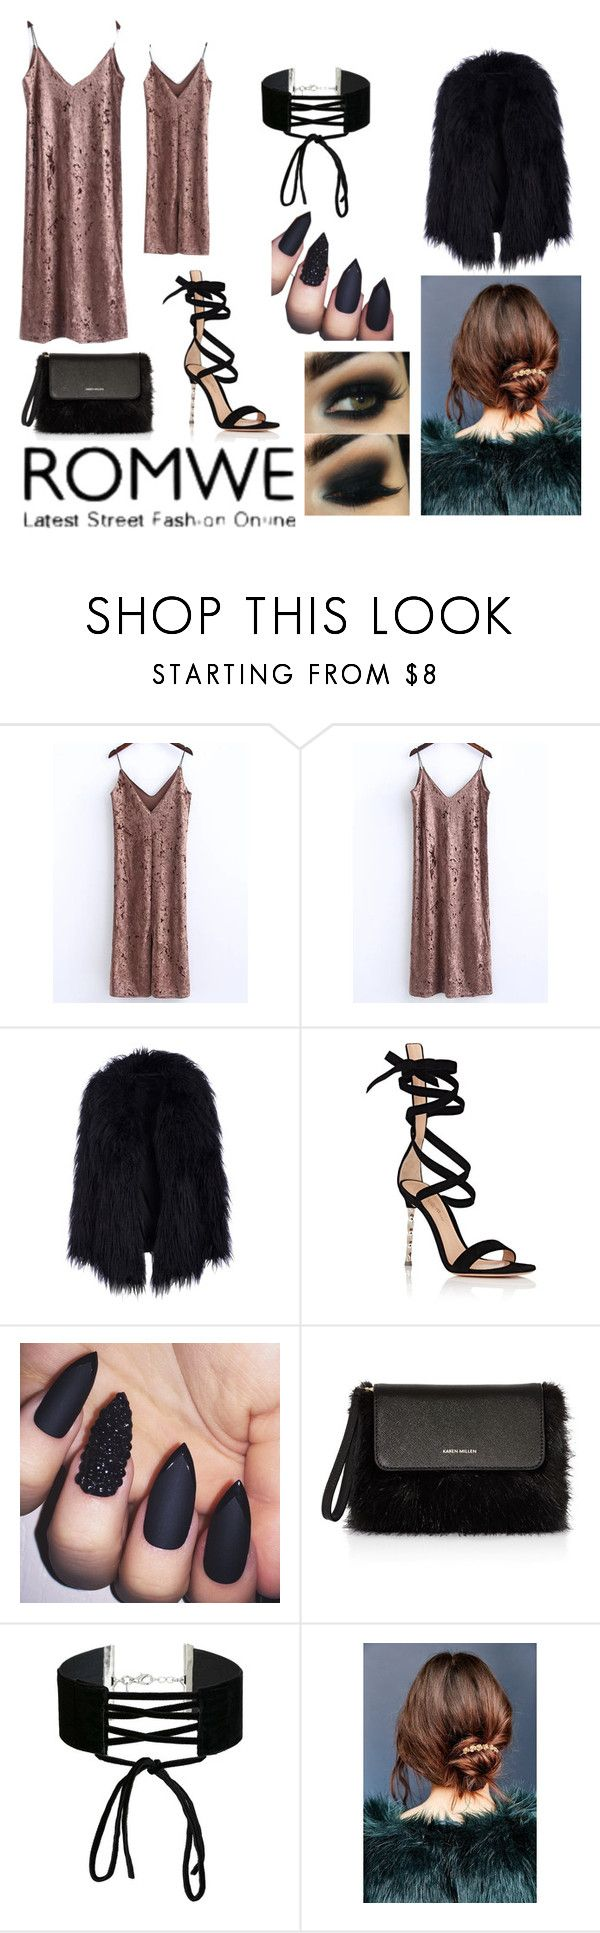 """Bez naslova #39"" by sejlabrkic ❤ liked on Polyvore featuring Gianvito Rossi, Karen Millen, Miss Selfridge and Urban Outfitters"